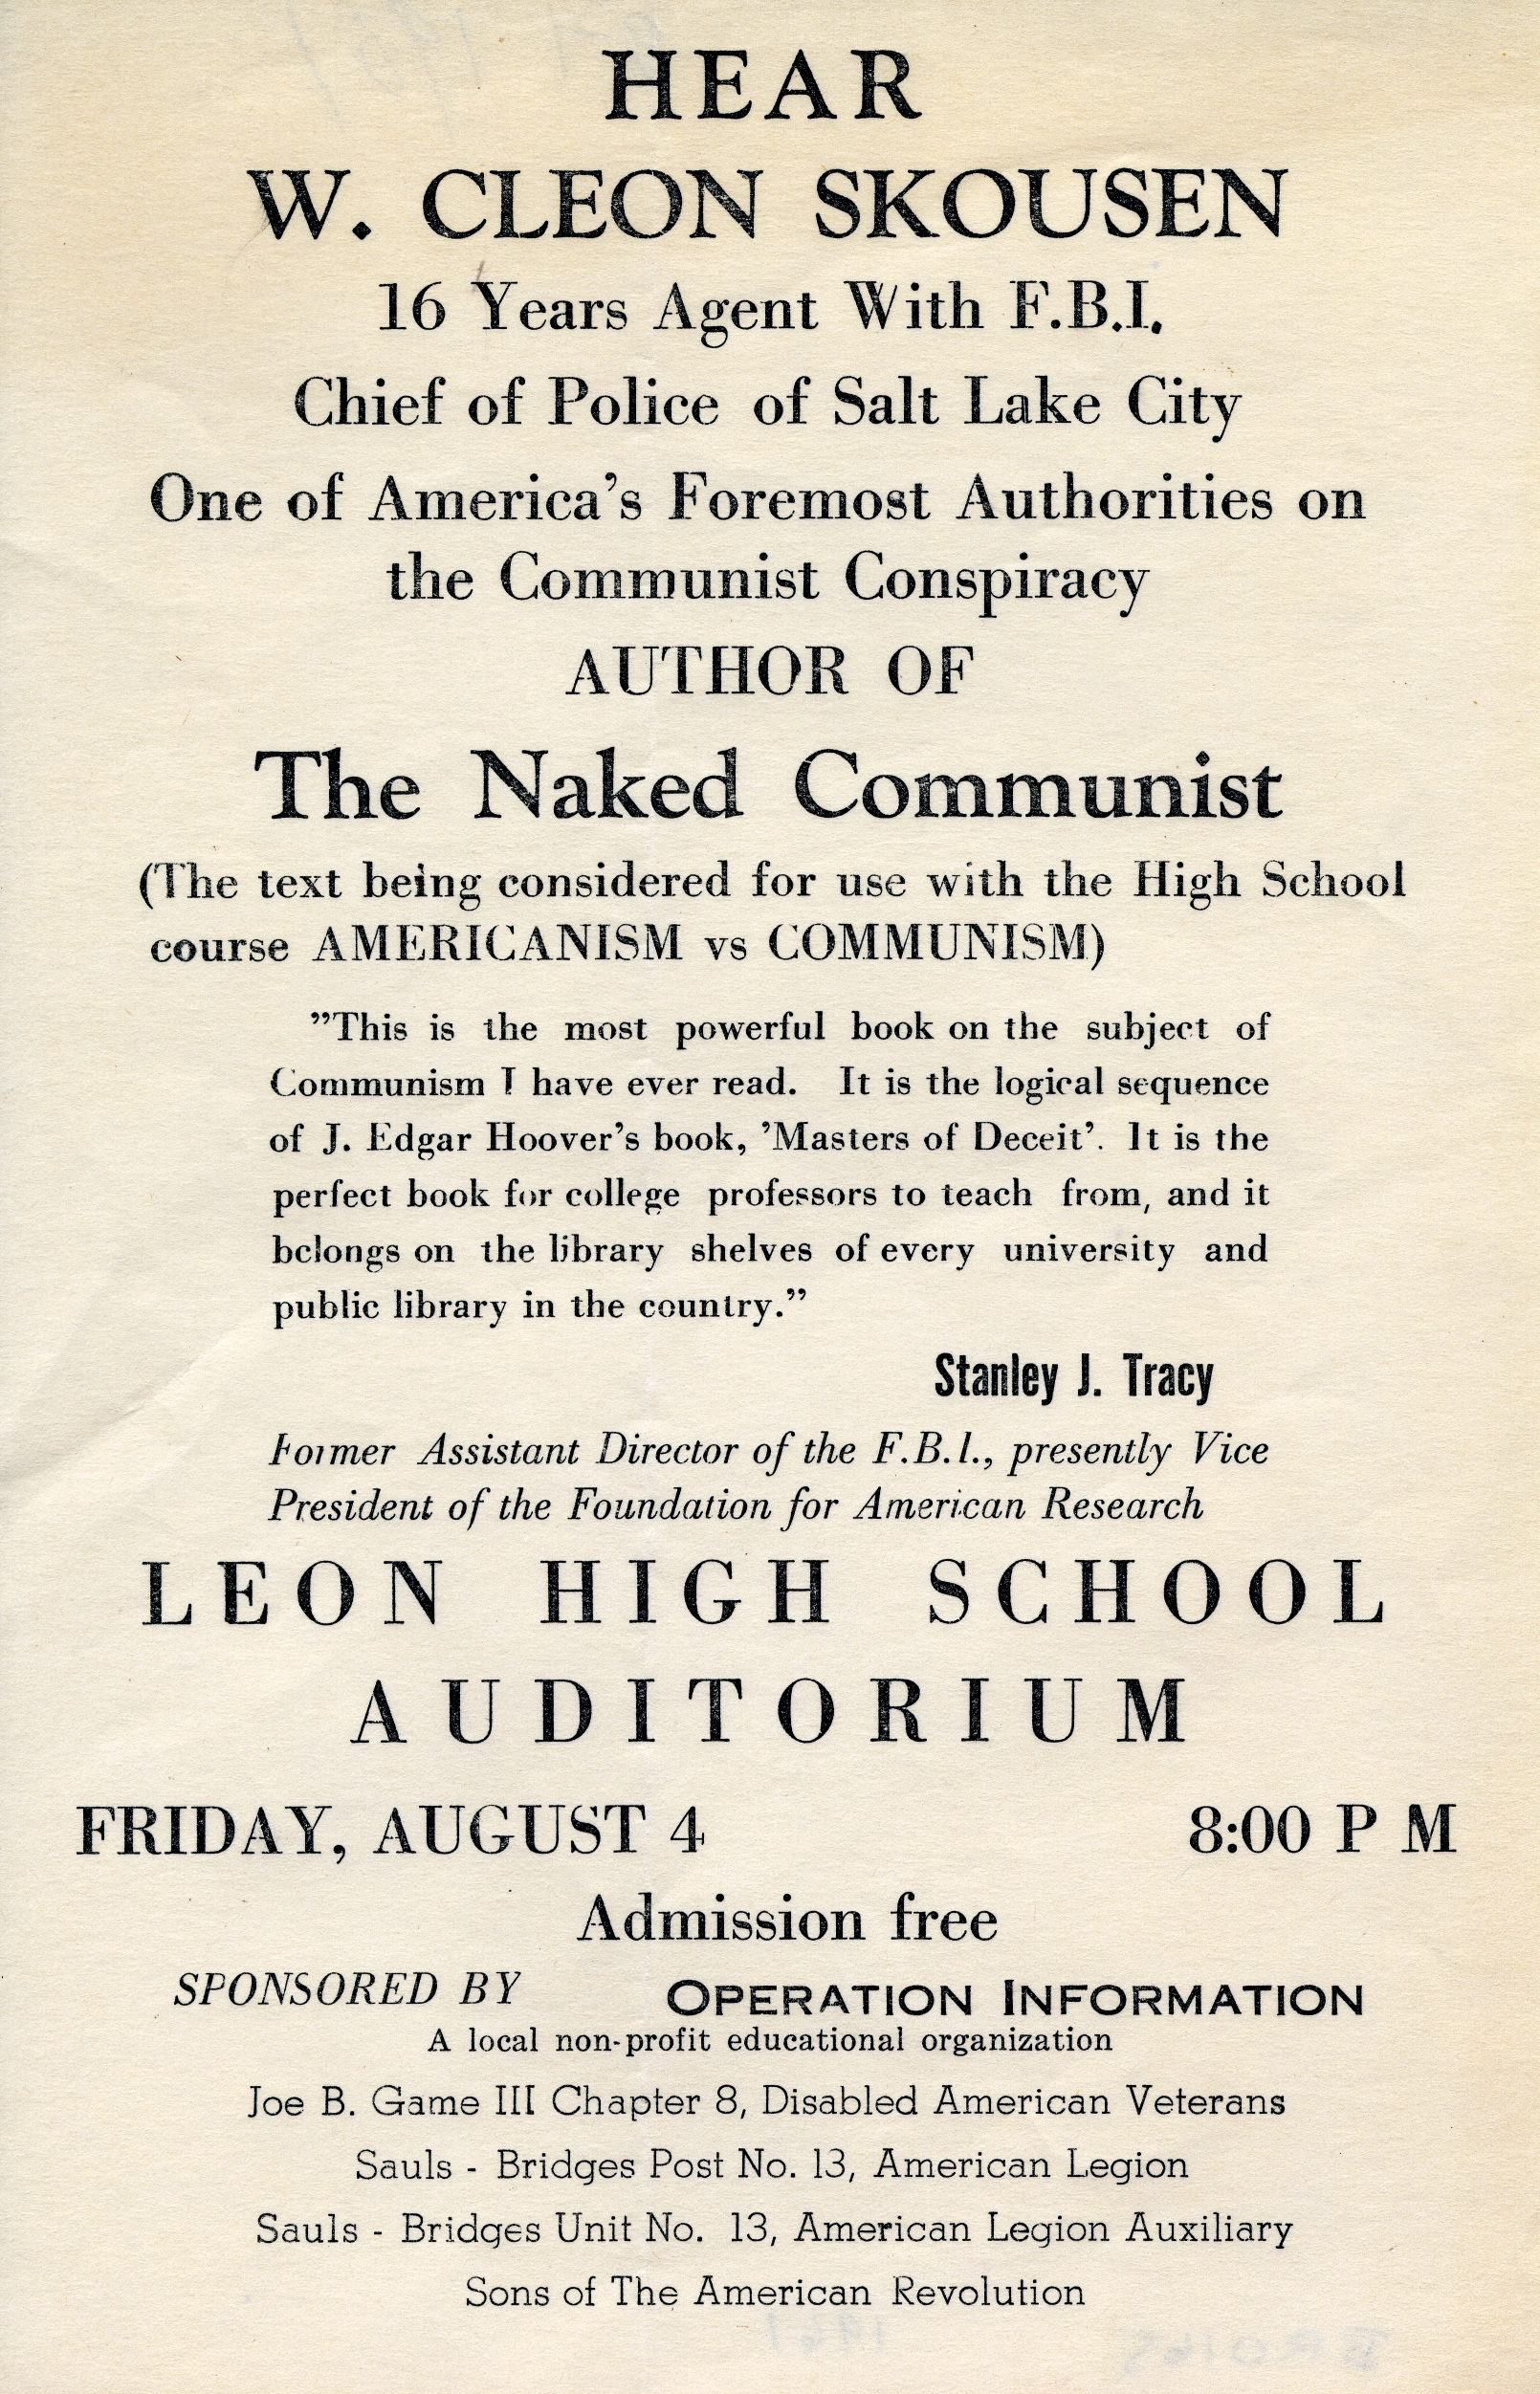 Hear W. Cleon Skousen, author of 'The Naked Communist'.